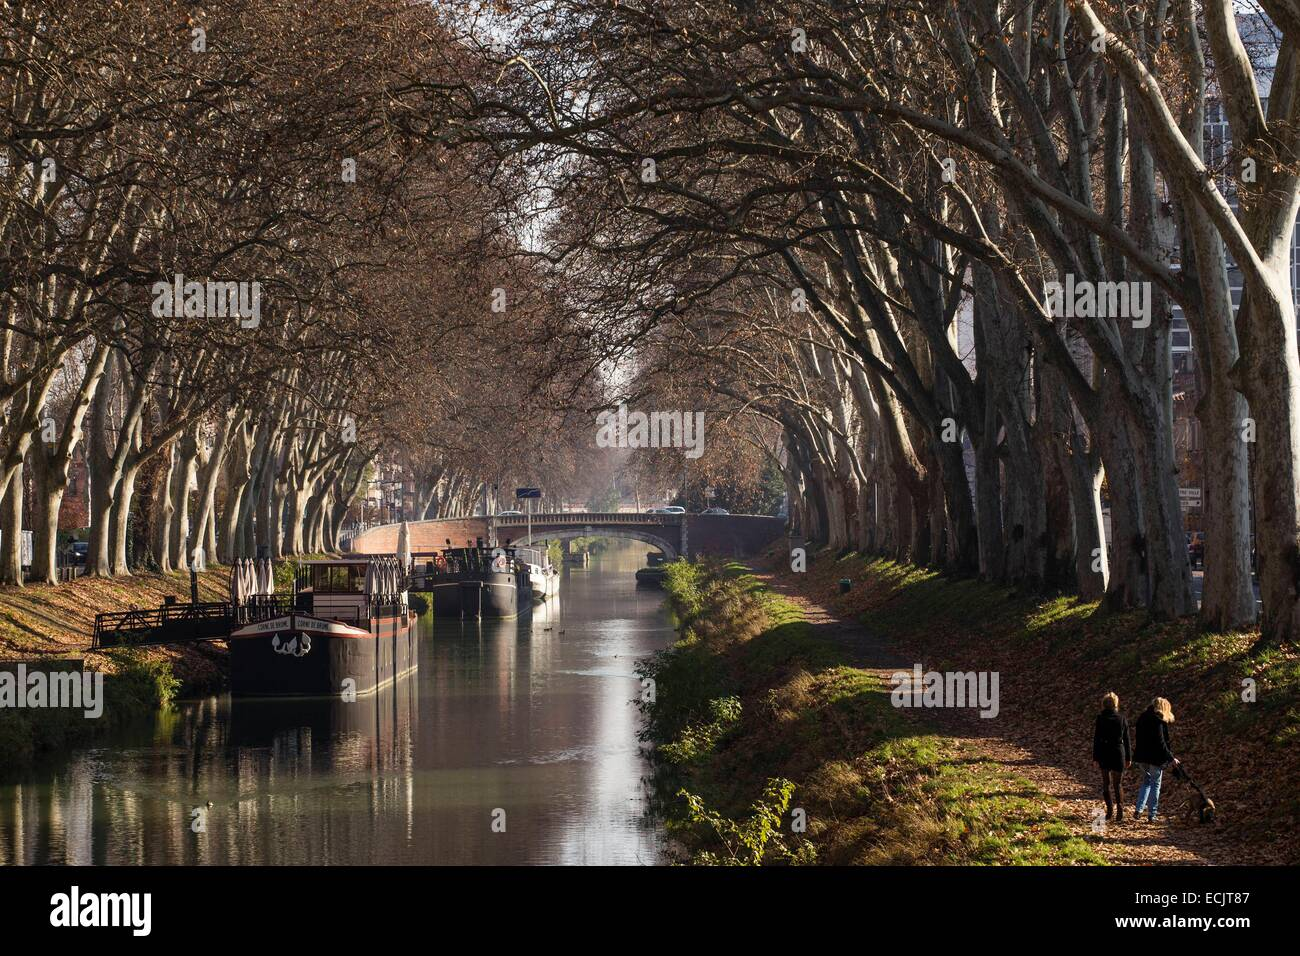 garonne river in toulouse france stockfotos garonne river in toulouse france bilder alamy. Black Bedroom Furniture Sets. Home Design Ideas